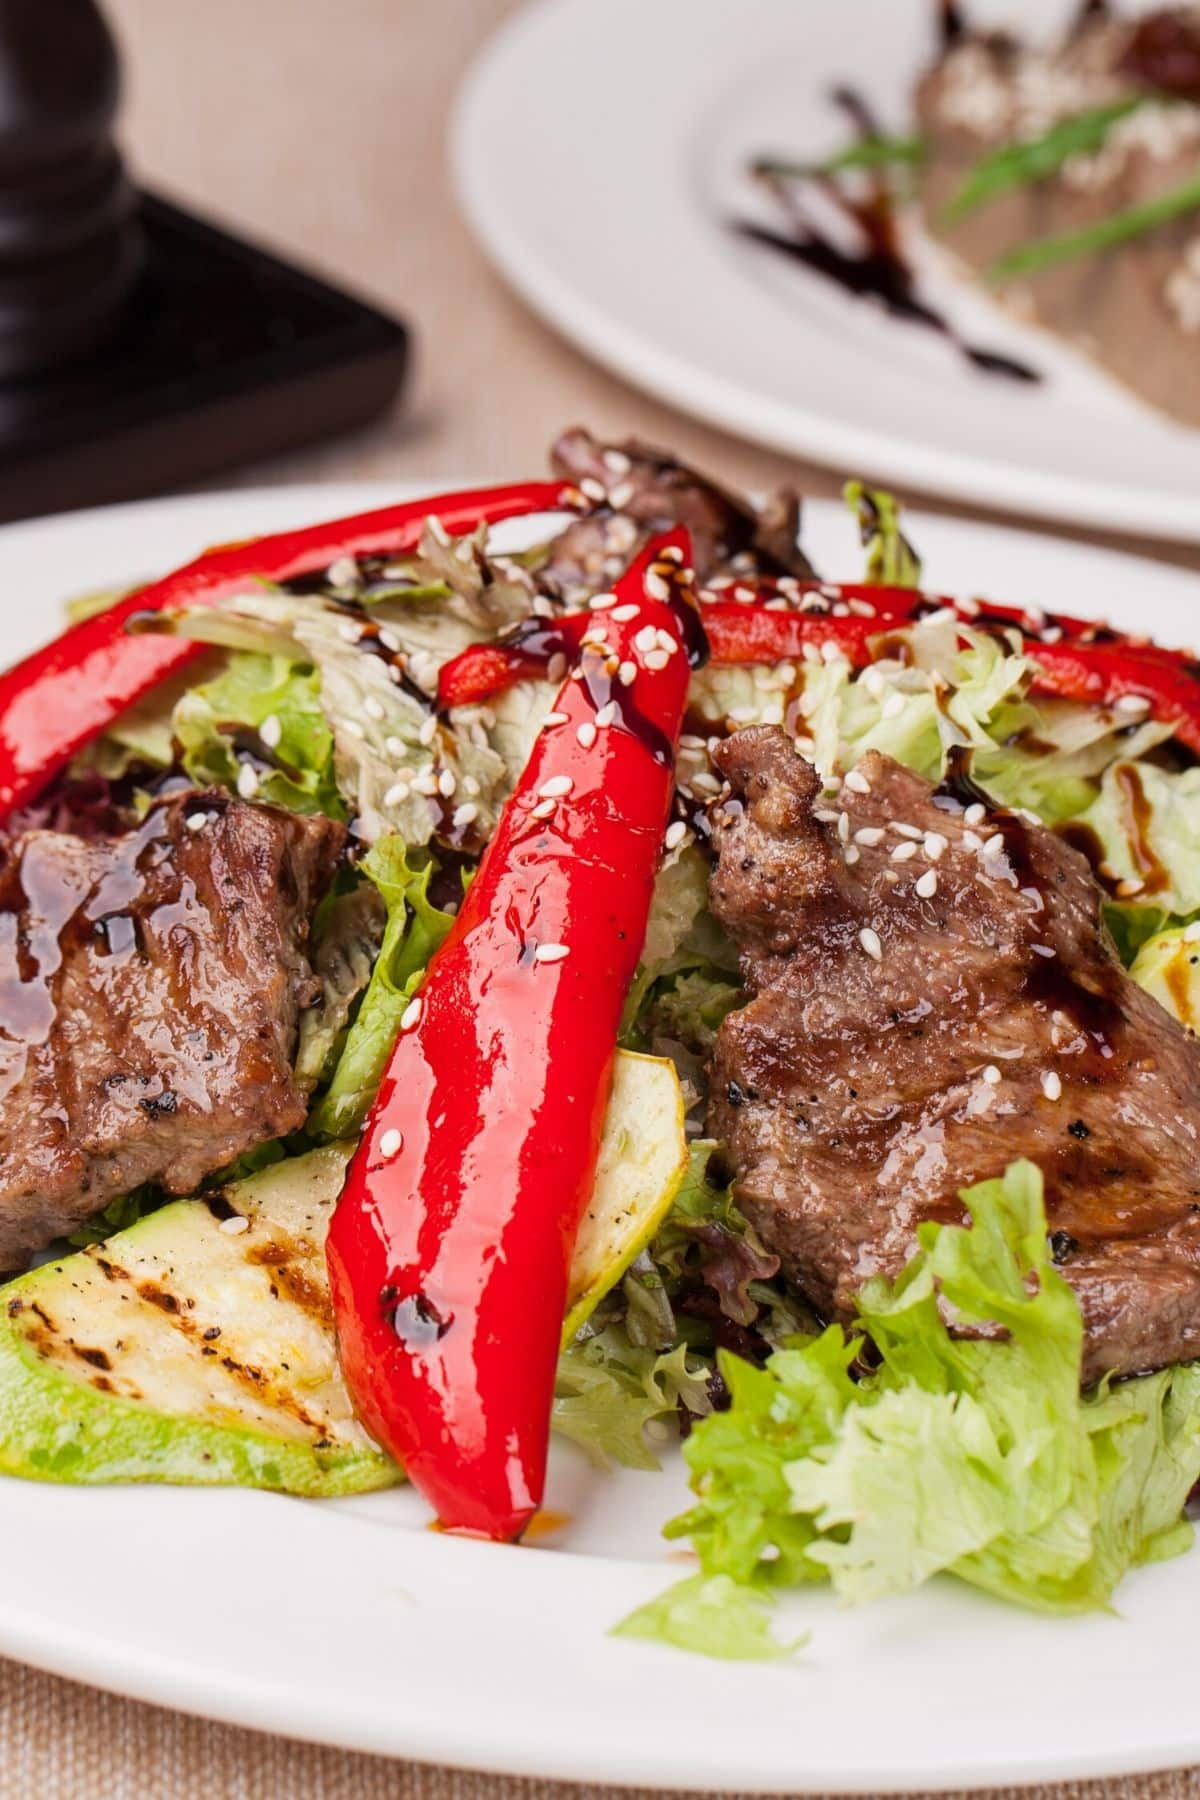 steak salad on a plate with veggies